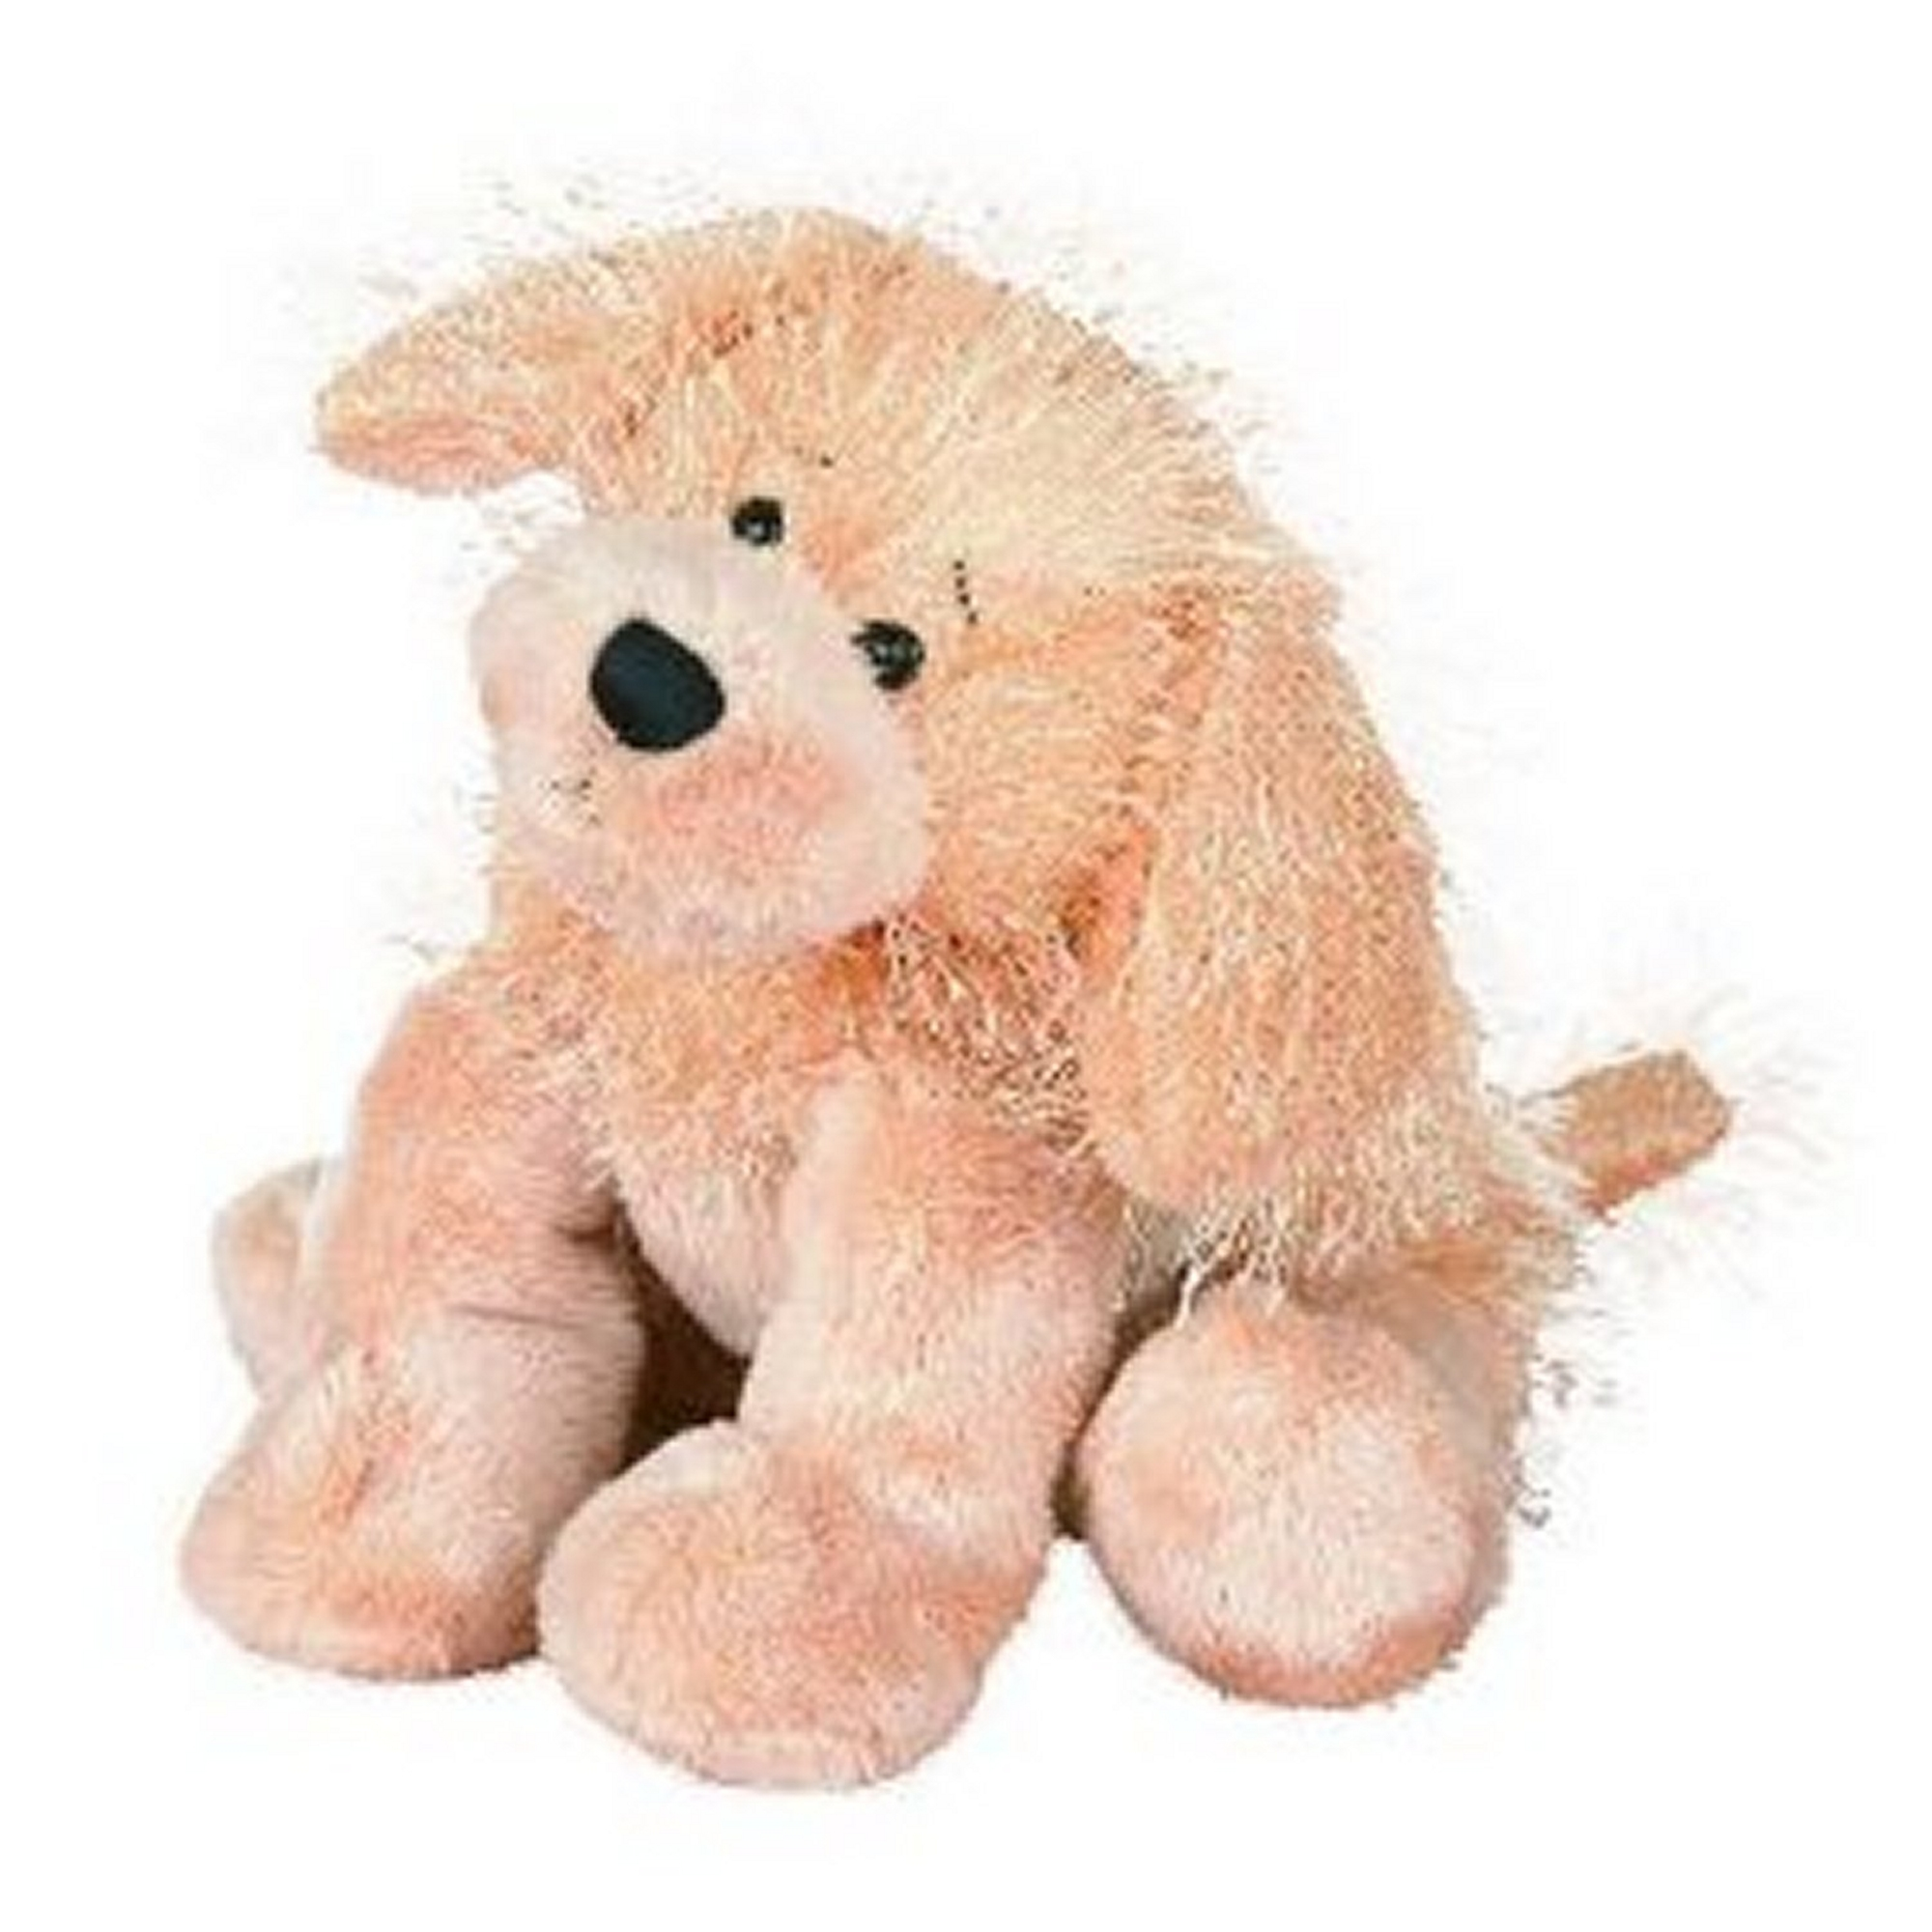 WEBKINZ - GOLDEN RETRIEVER